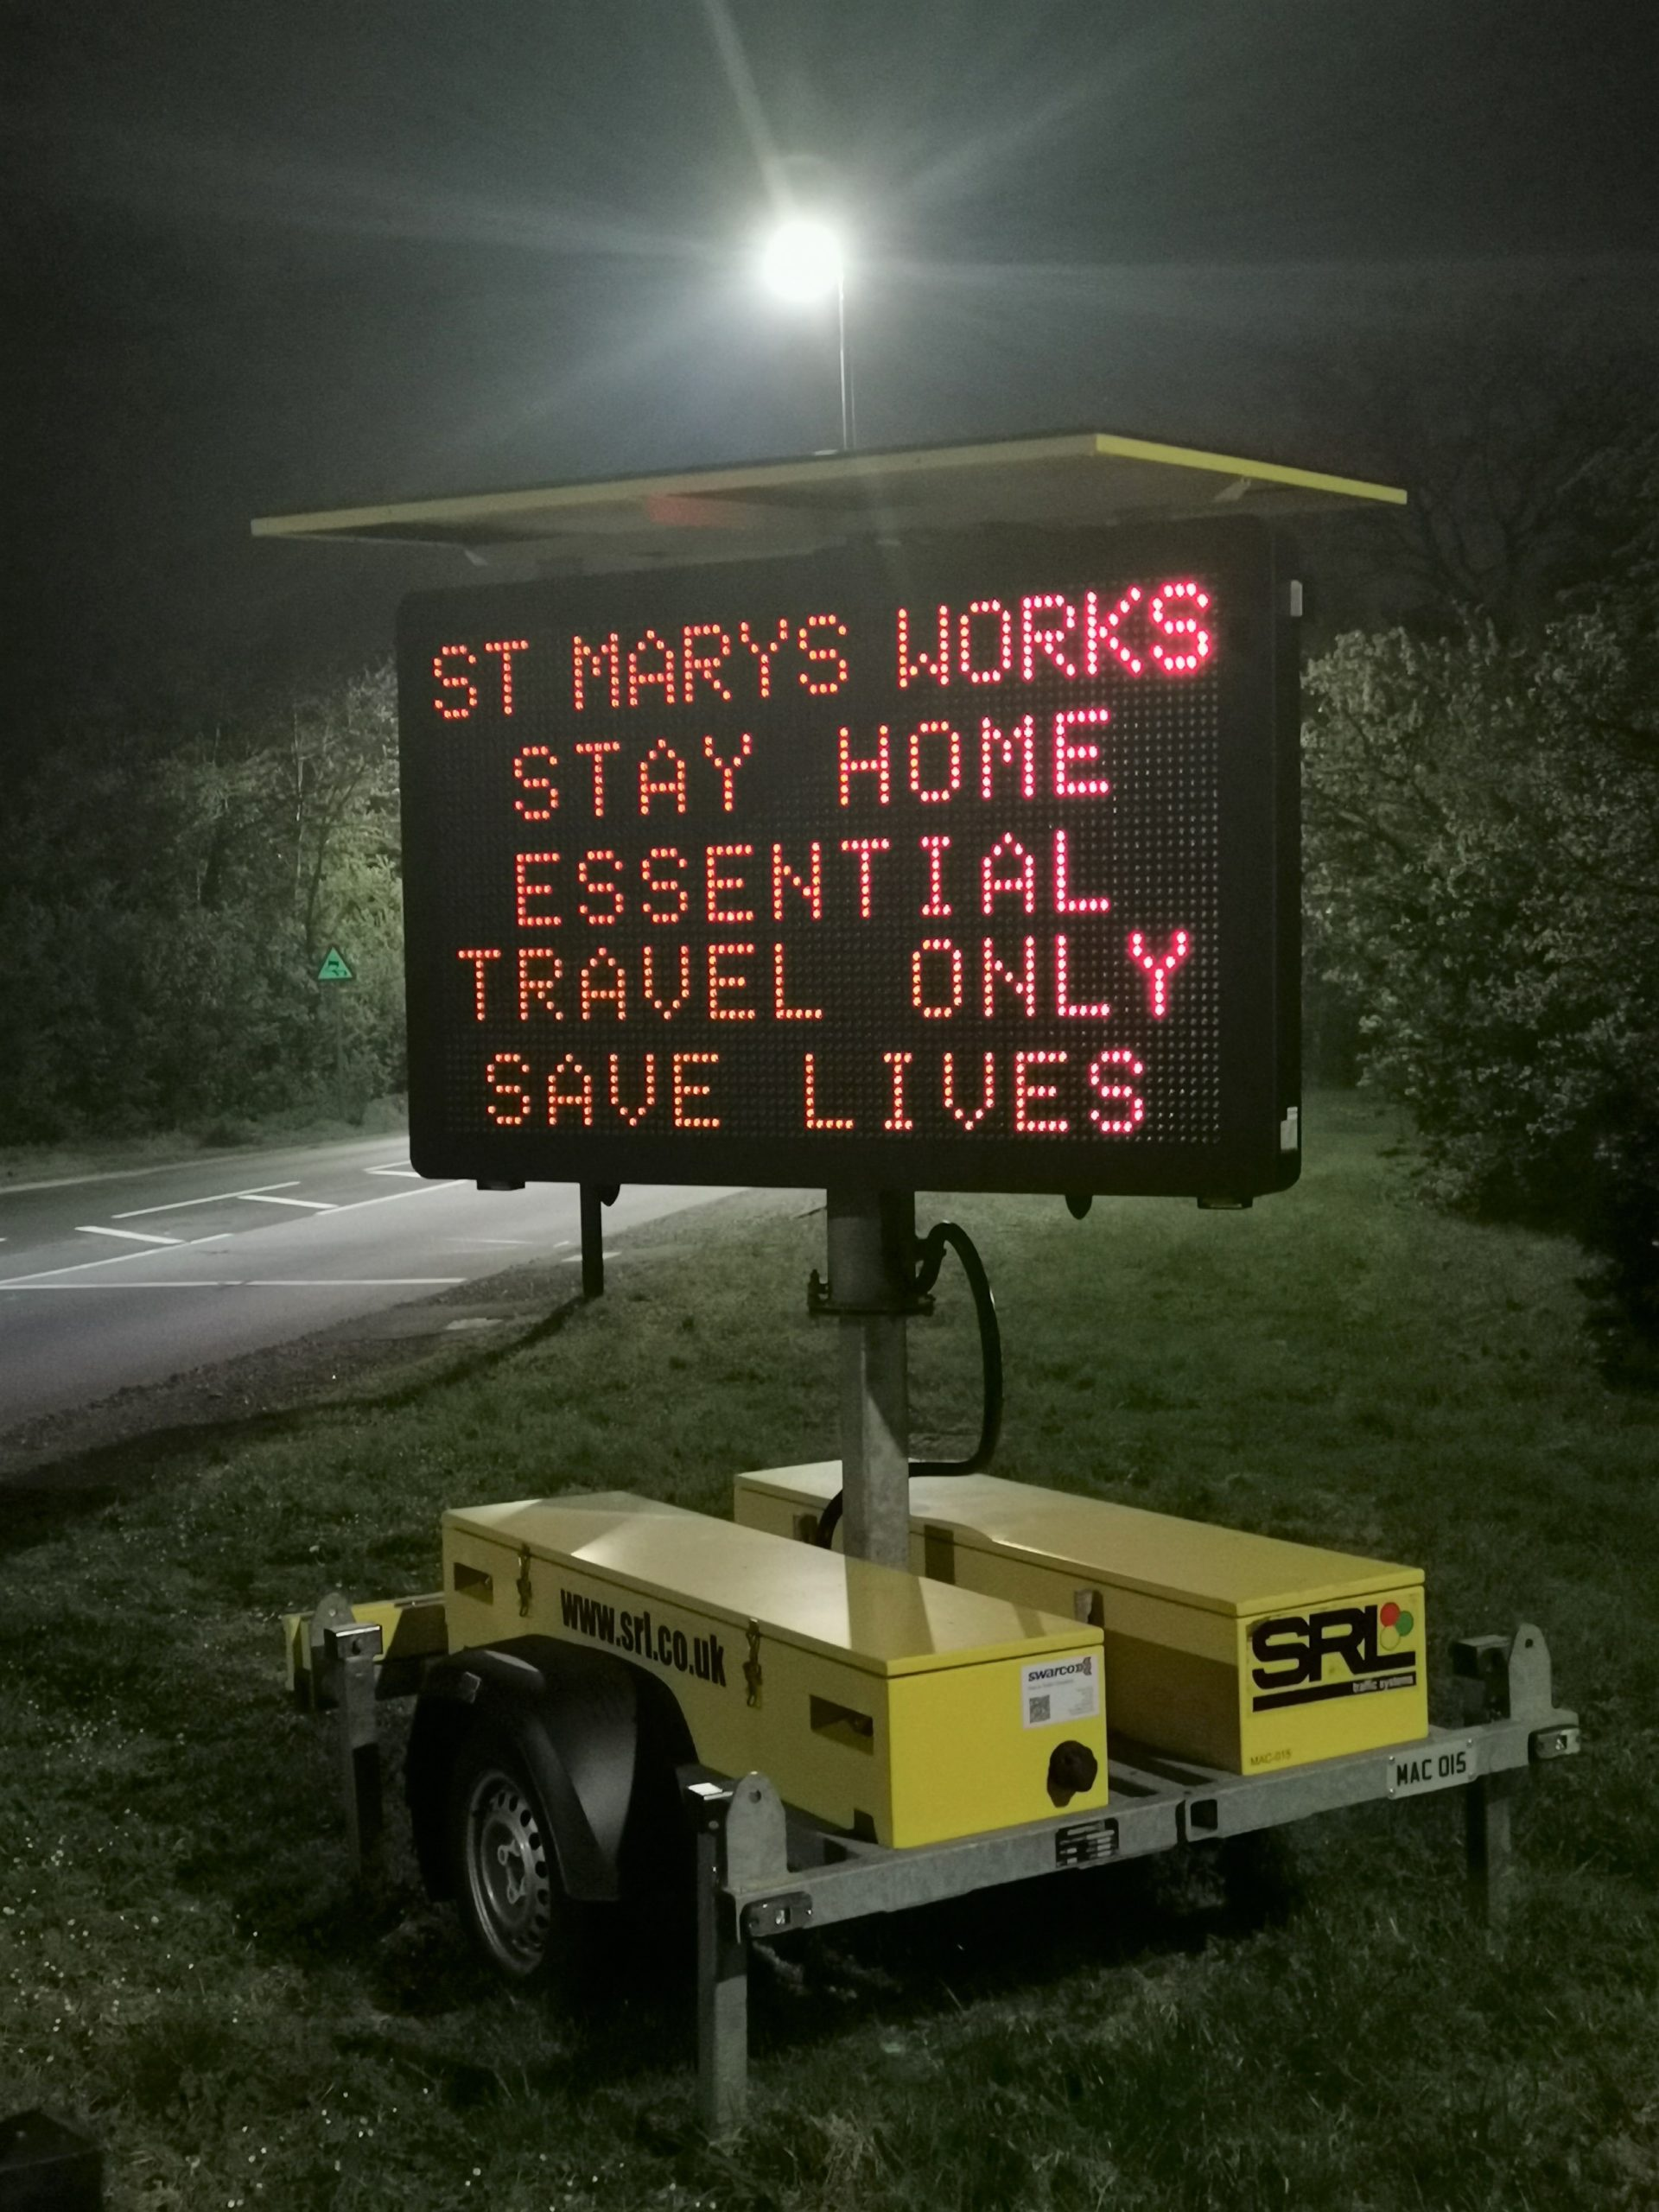 Photo showing essential health messaging on VMS signs on the roadside near St Mary's advising people to stay home, essential travel only, save lives. Photo taken at night.